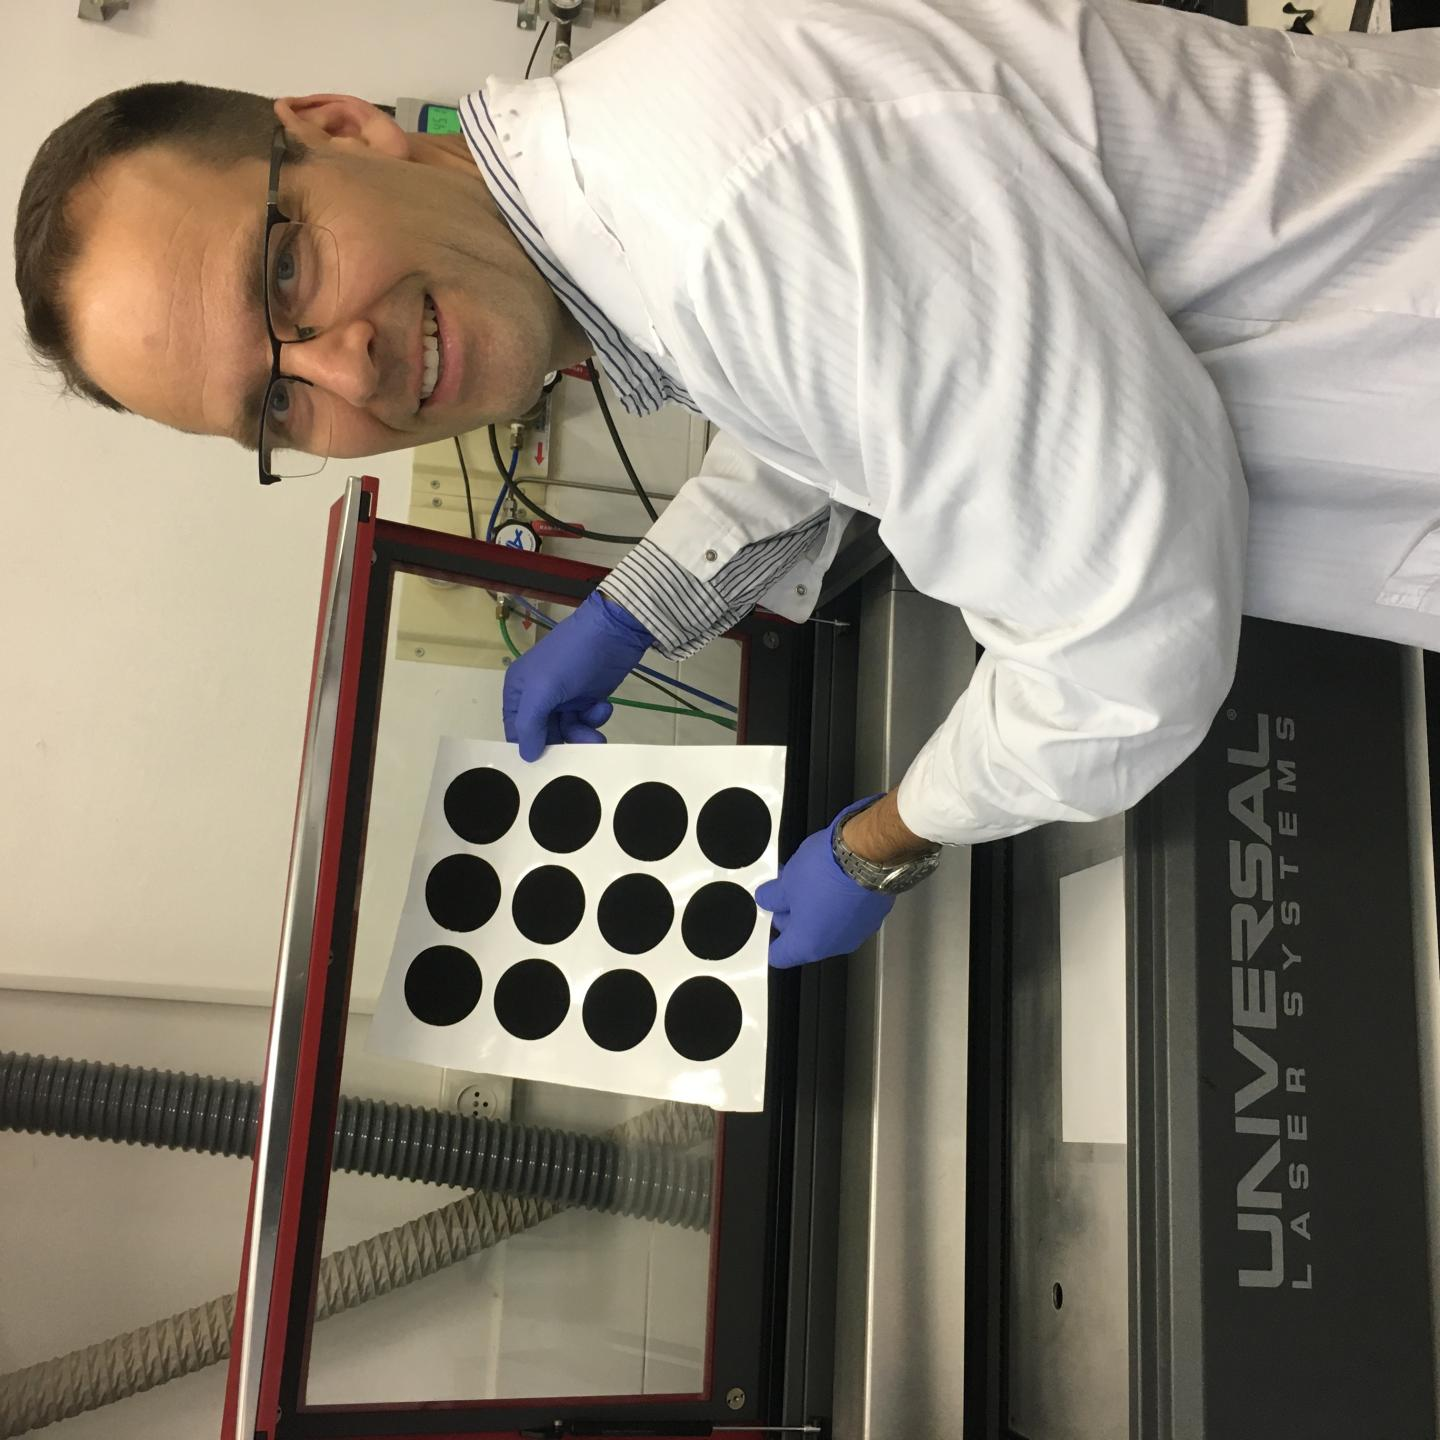 Laser Induced Graphene Yields New Self-Sterilizing Filtration Technologies Being Developed by Ben-Gurion U. Researchers